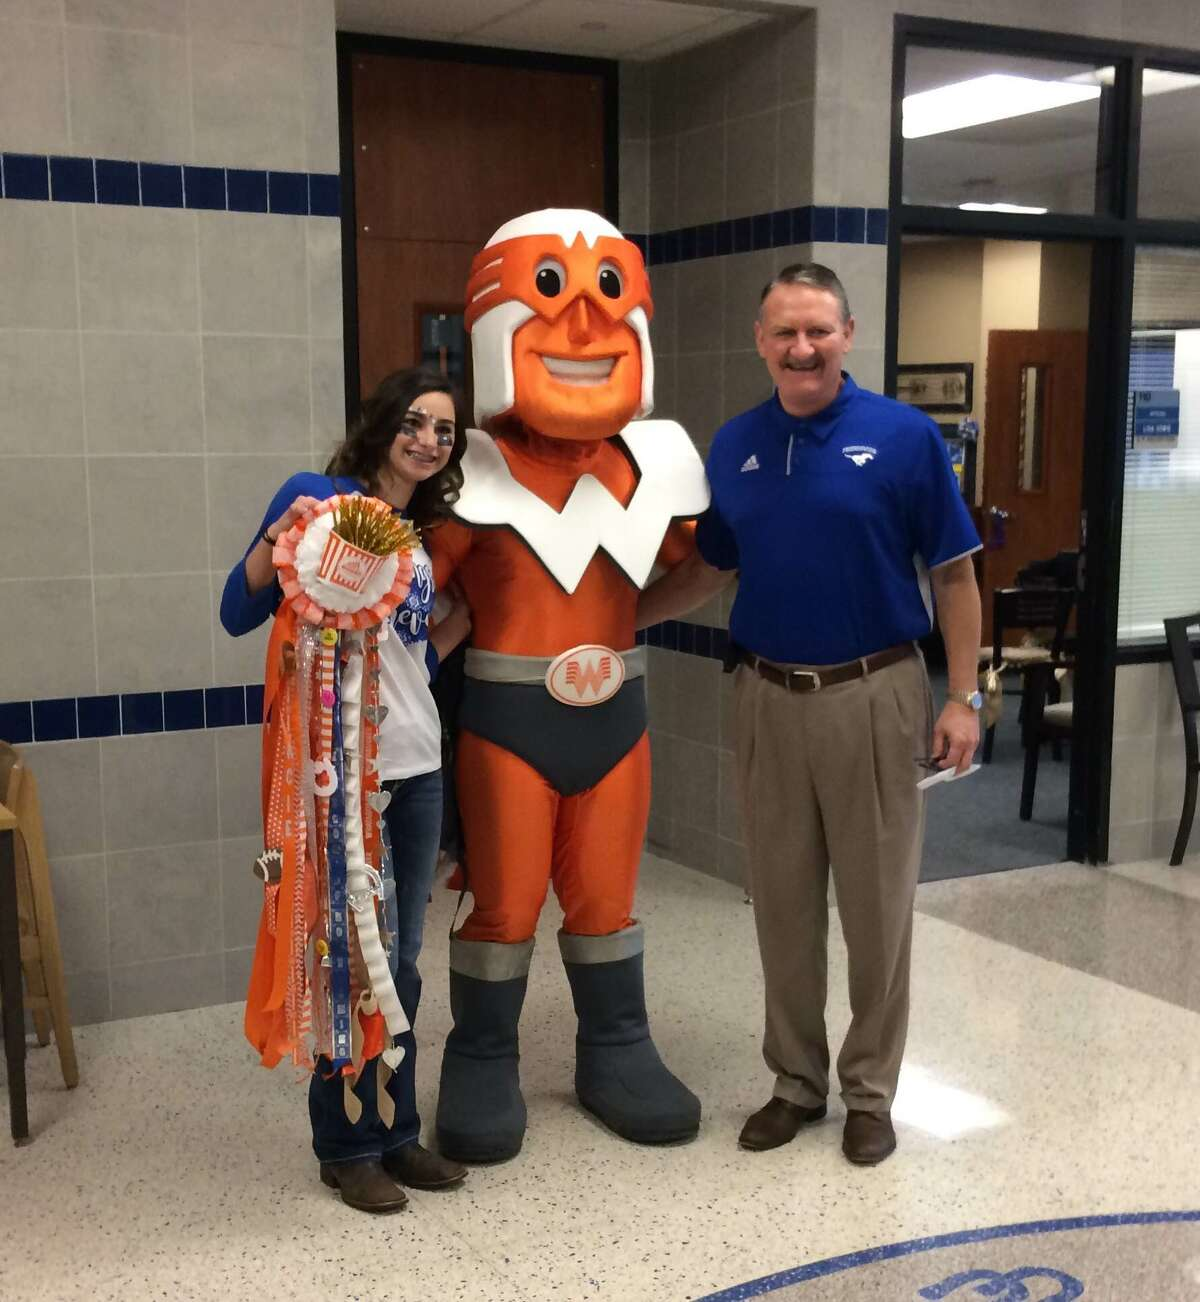 Gracie Kempken with Whataguy and Friendswood High School Principal Mark Griffon. Keep clicking for more Texas students' tweets that prove homecoming and Whataburger go together like honey butter and biscuits.